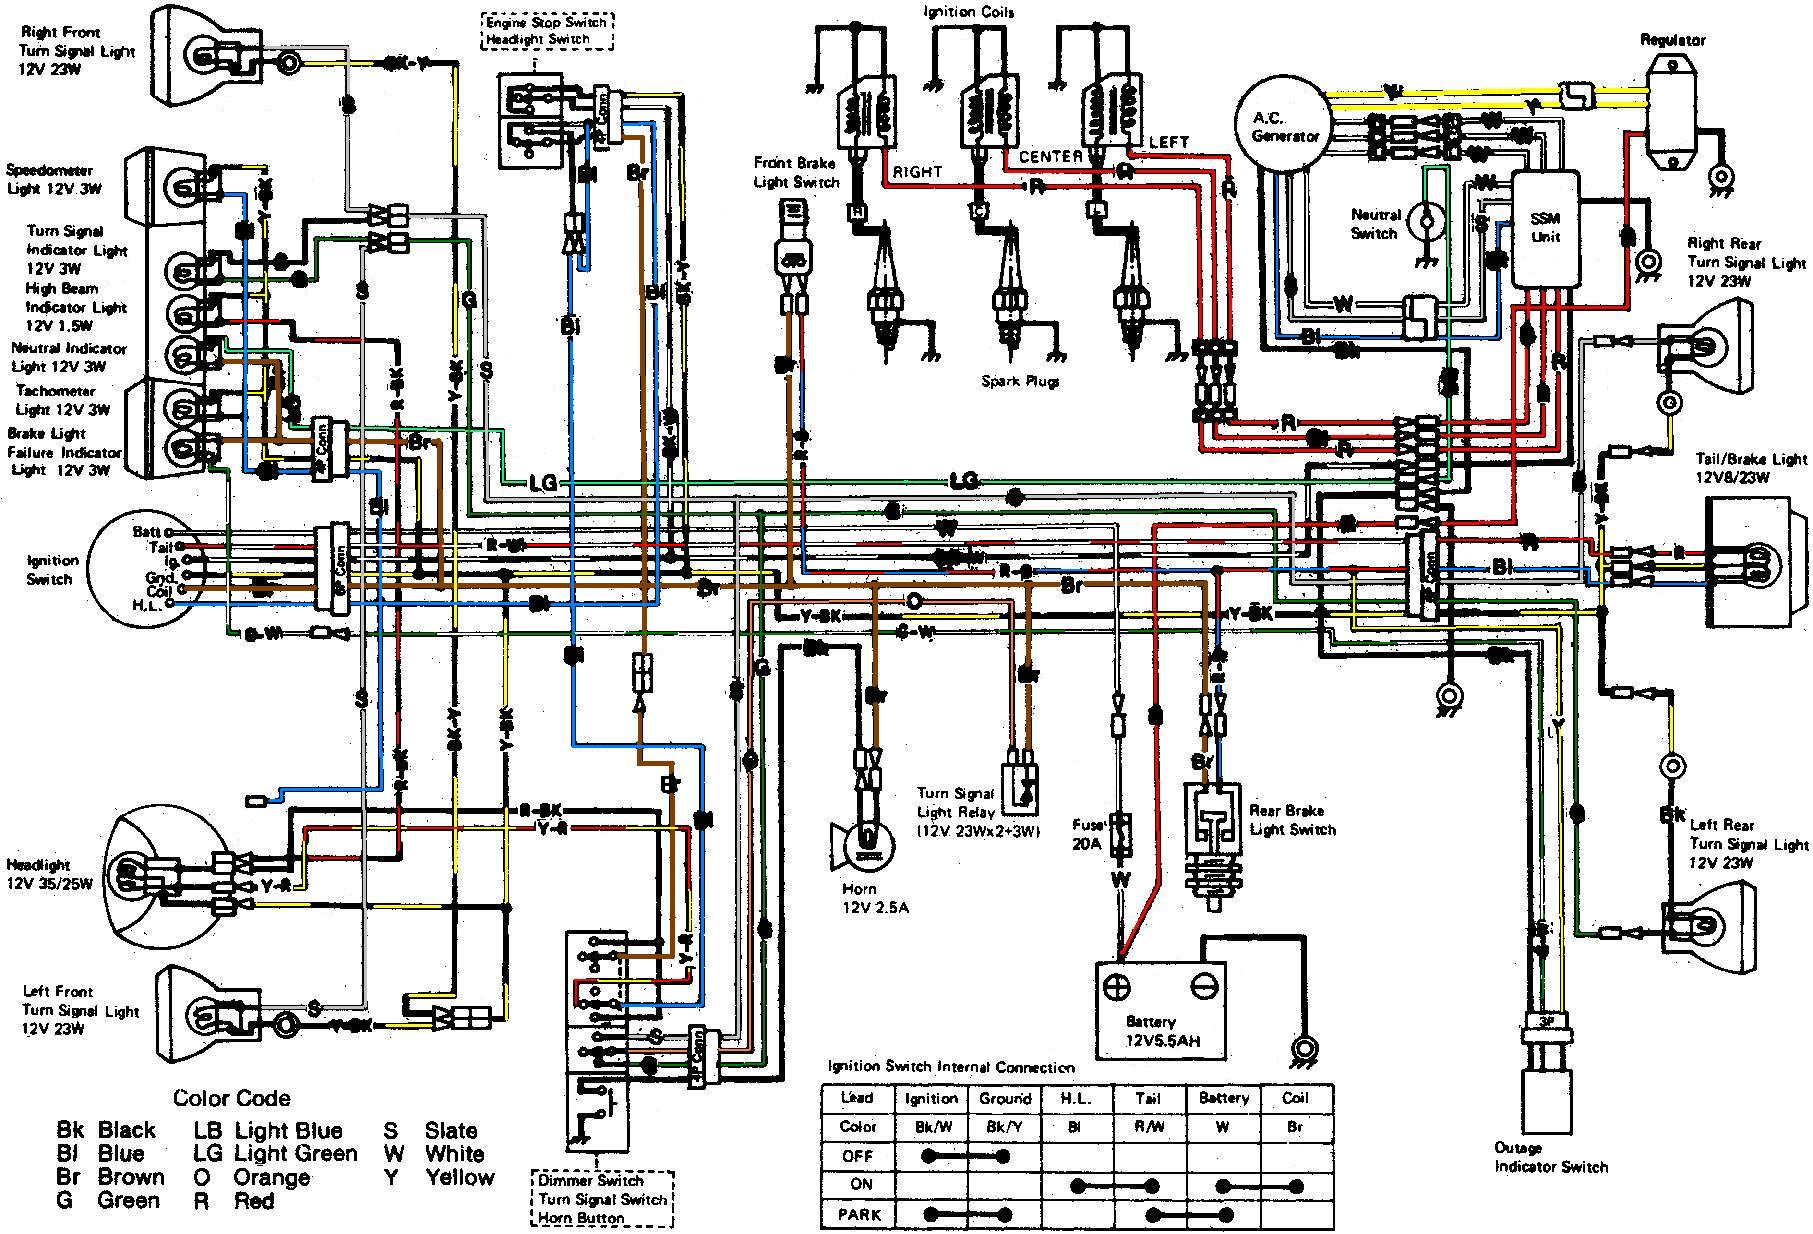 H2 Combination Switch Wiring - DIY Enthusiasts Wiring Diagrams •